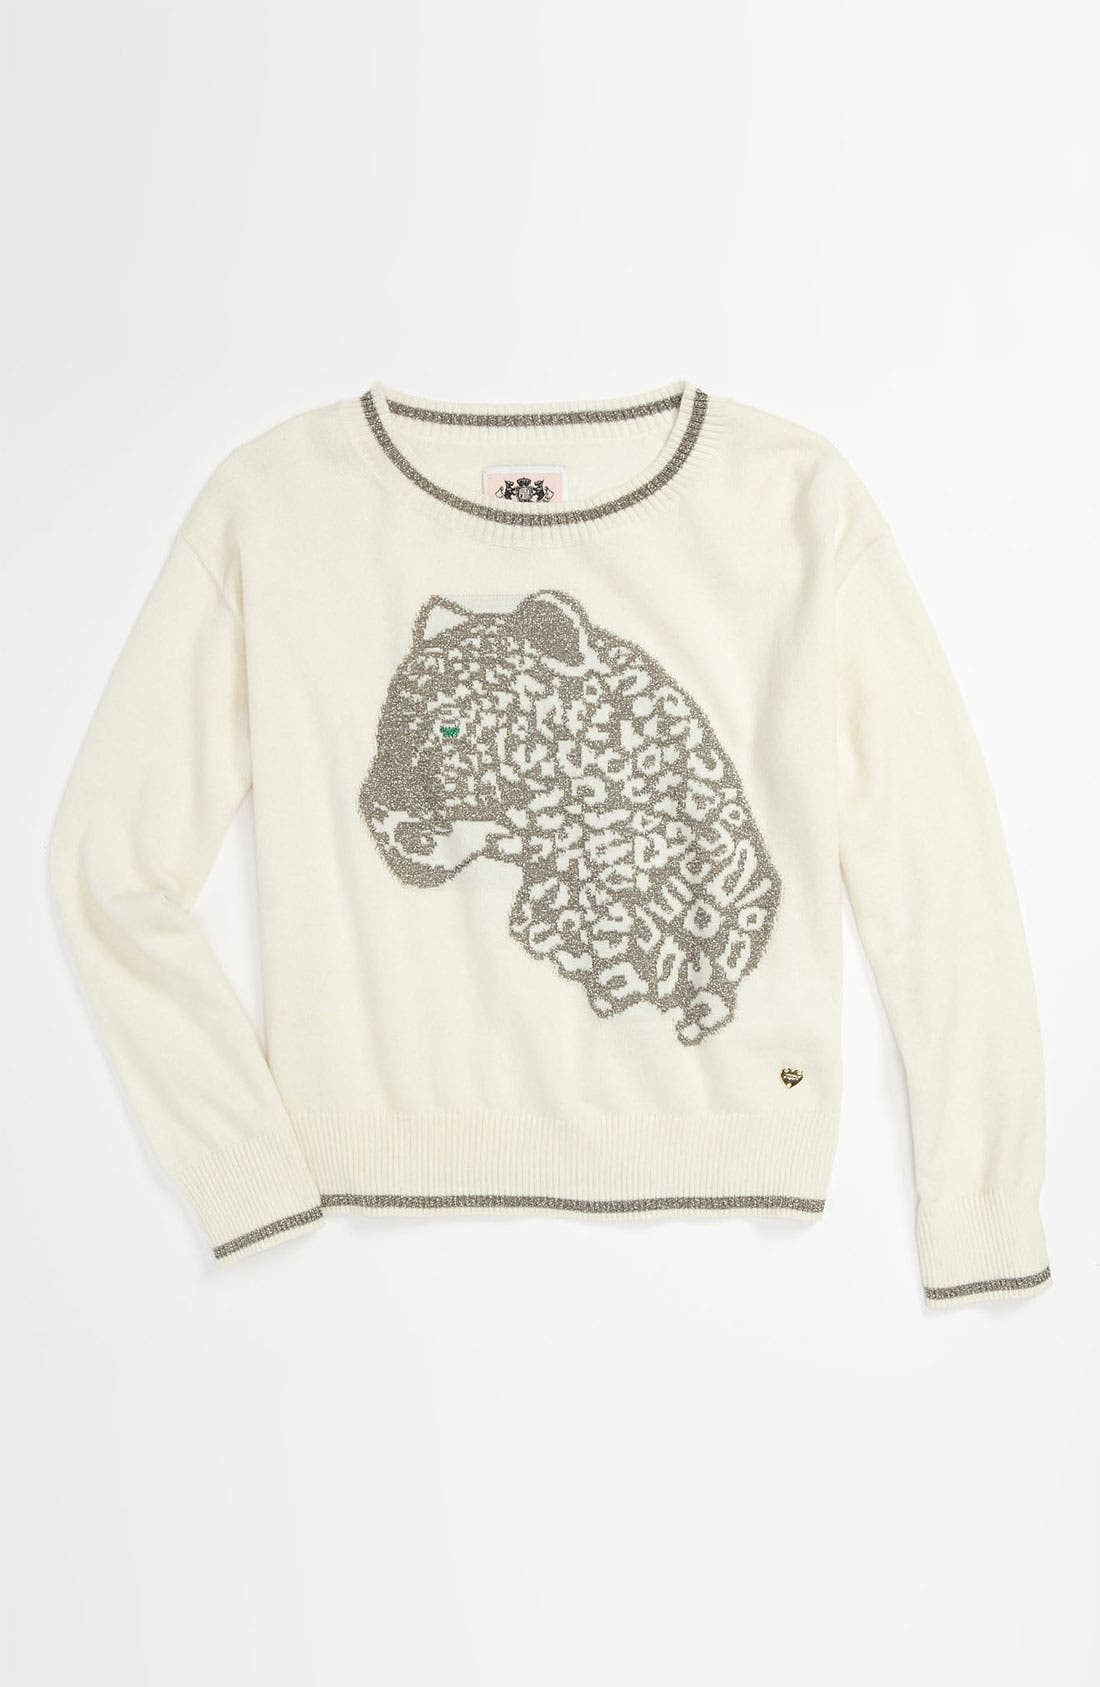 Alternate Image 1 Selected - Juicy Couture 'Snow Leopard' Sweater (Little Girls & Big Girls)